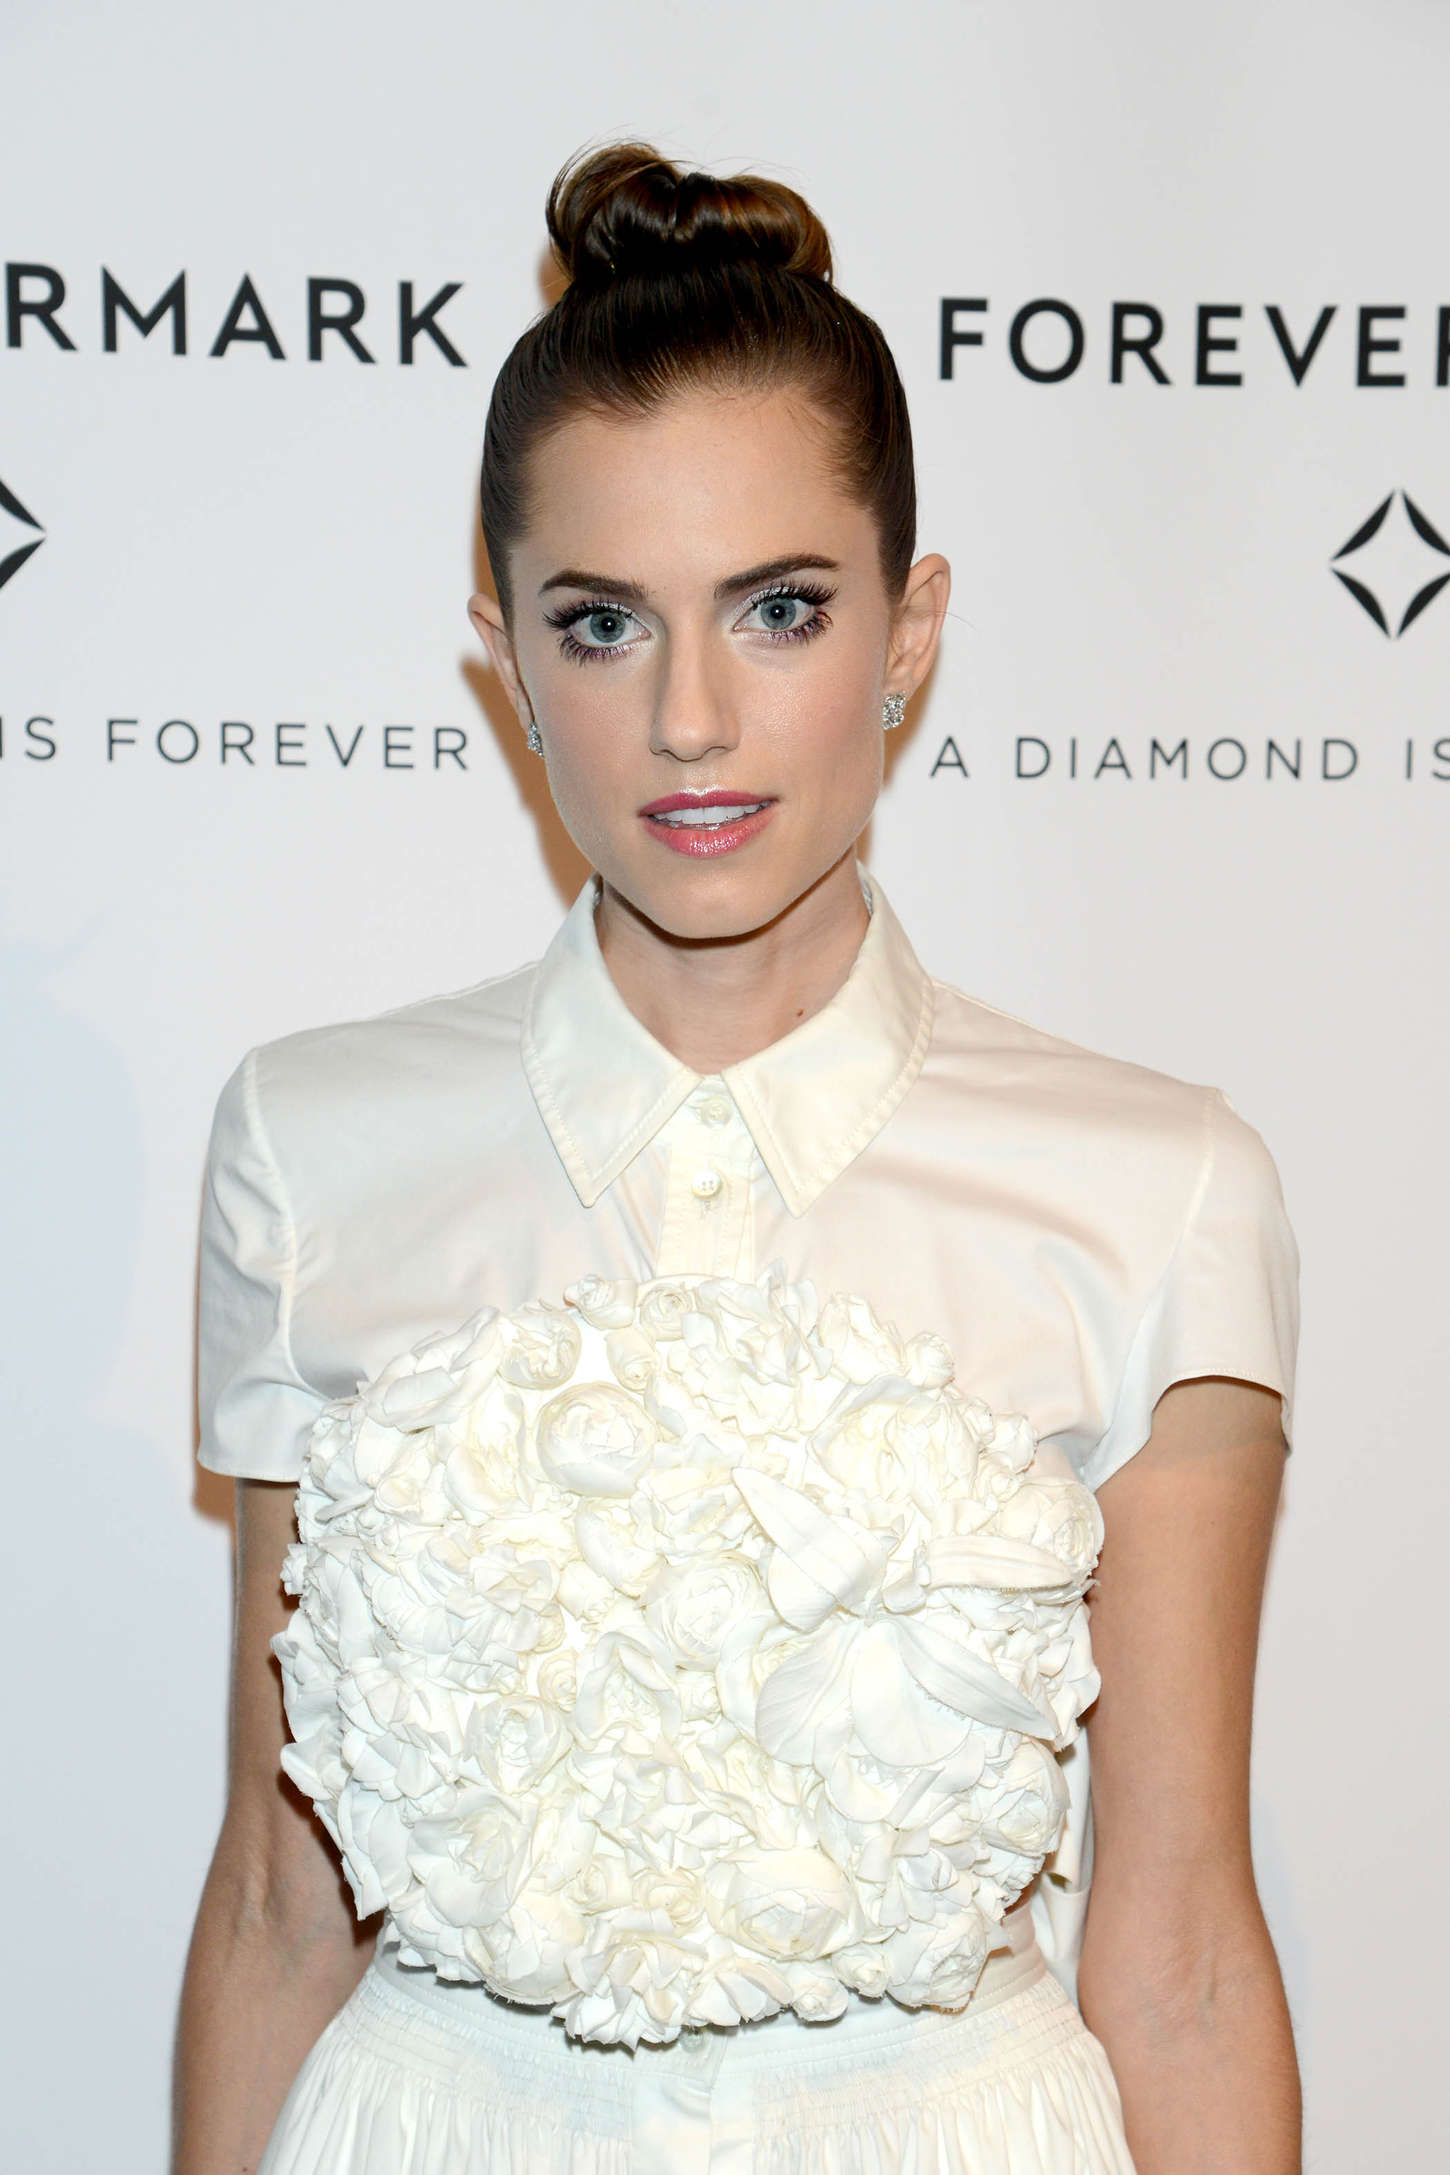 Allison Williams  Forevermark 'a Diamond Is Forever' Celebration In Nyc